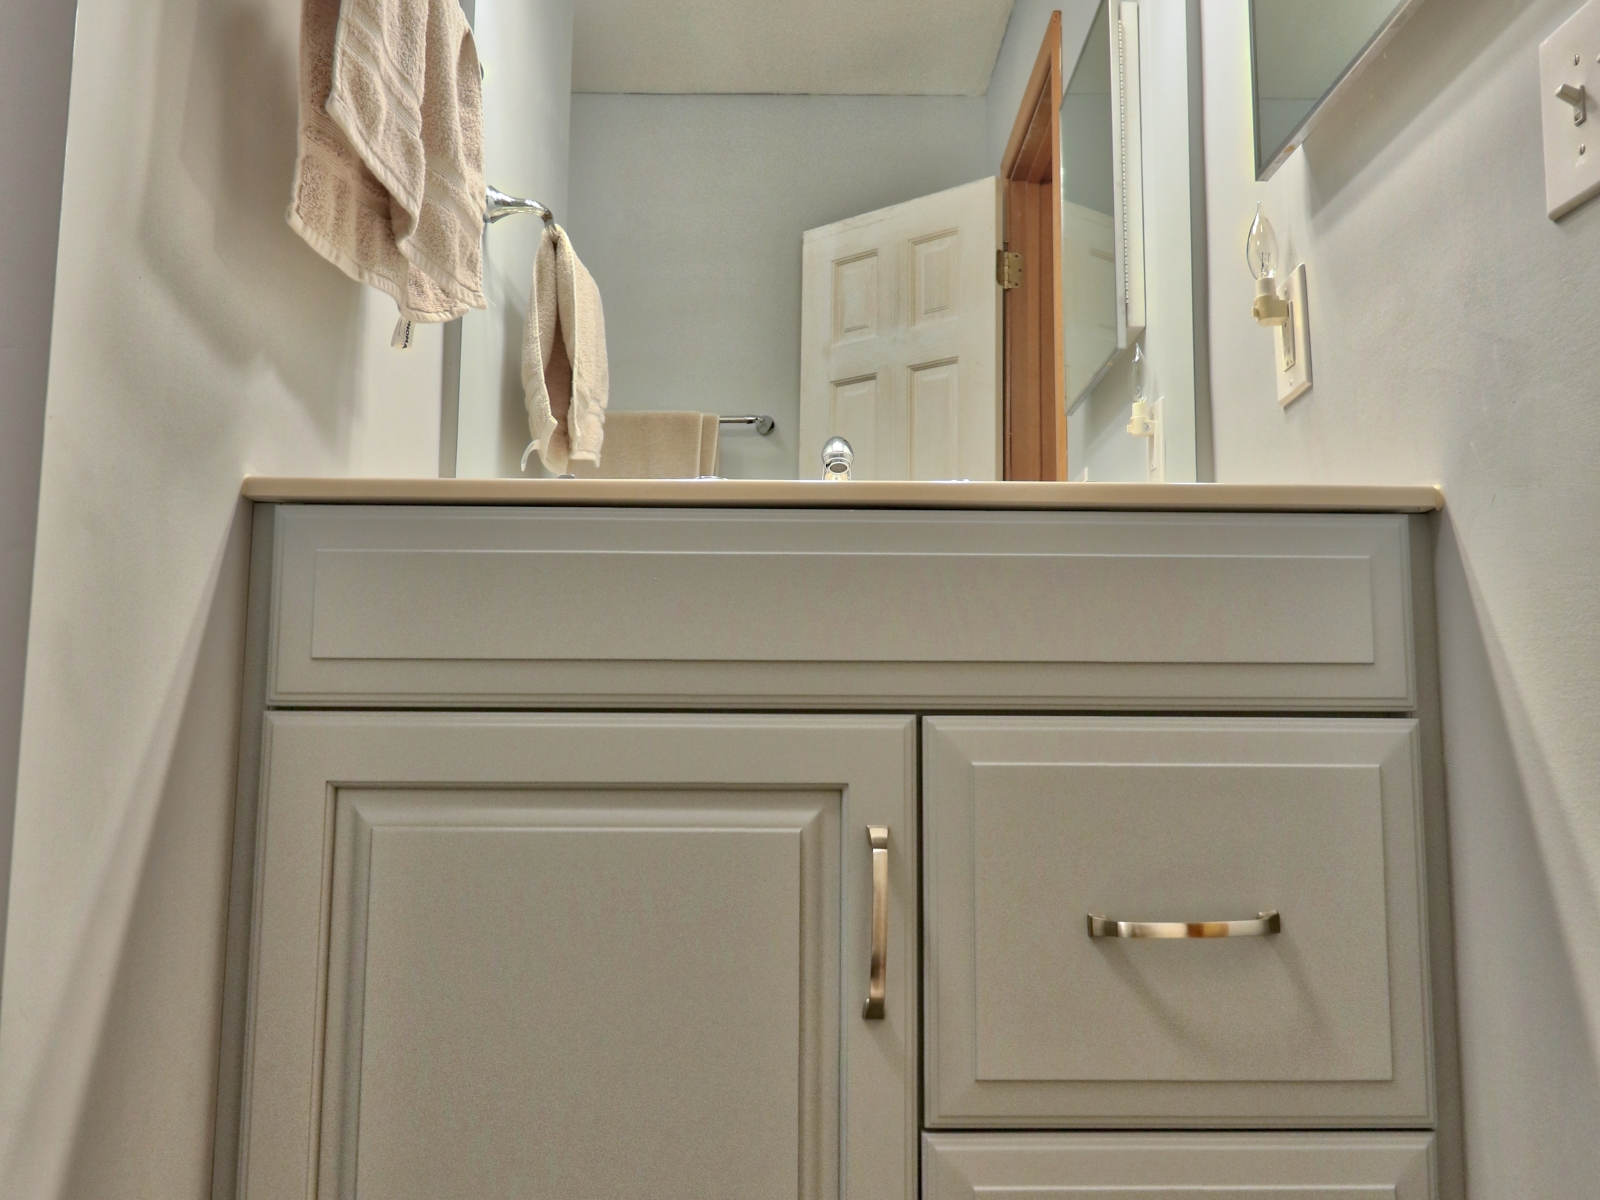 Painted Vanity & Cultured Marble After 05